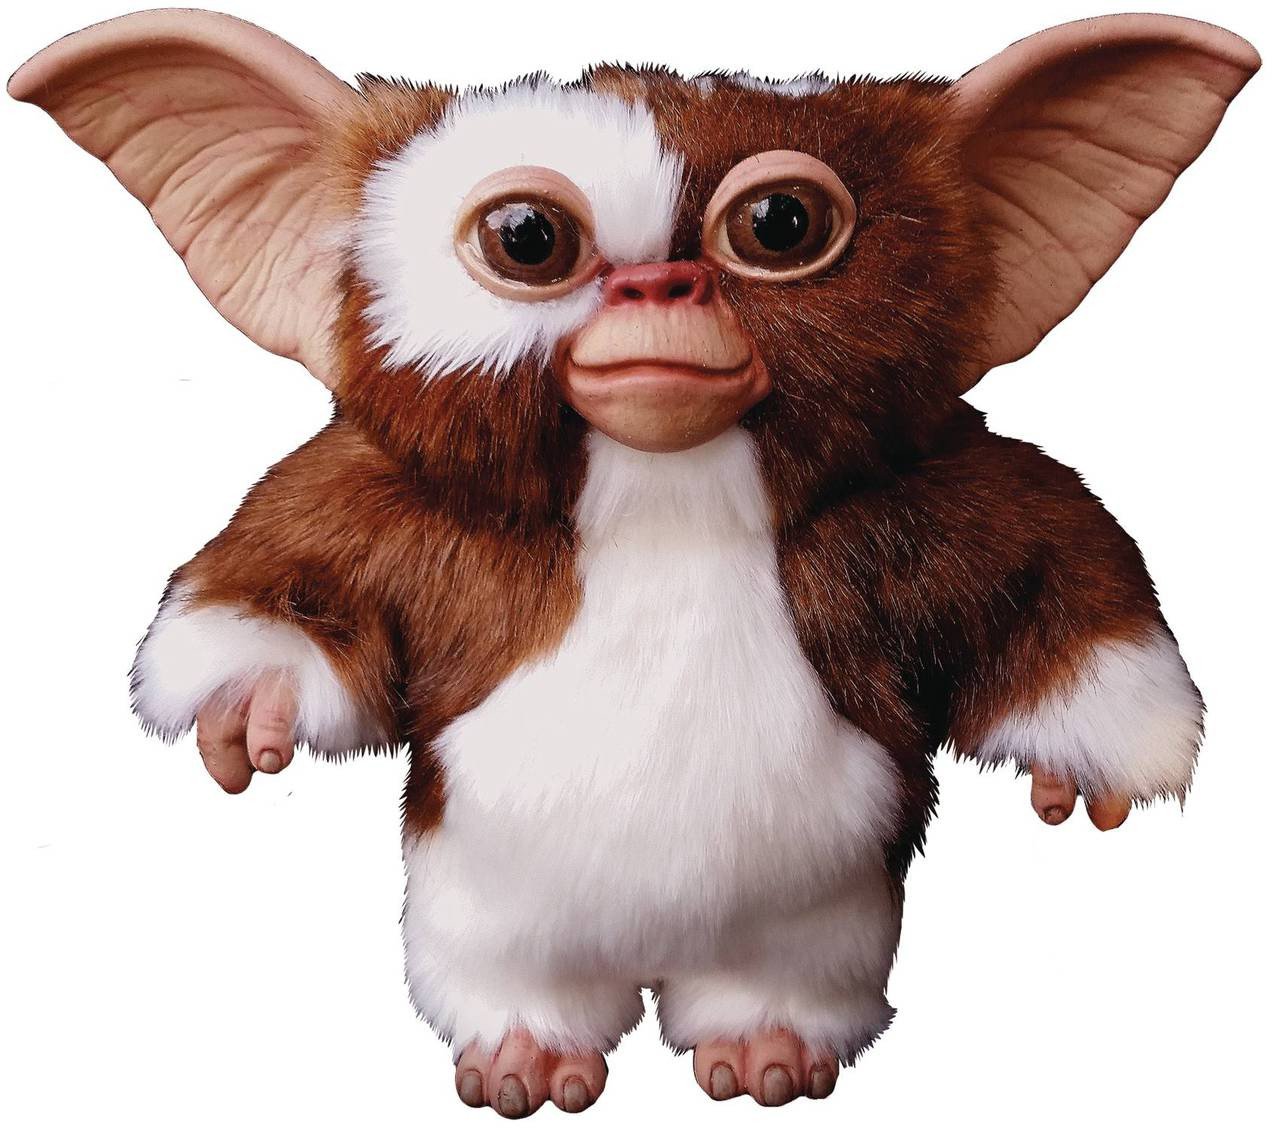 Gremlins evolved from cute Mogwais